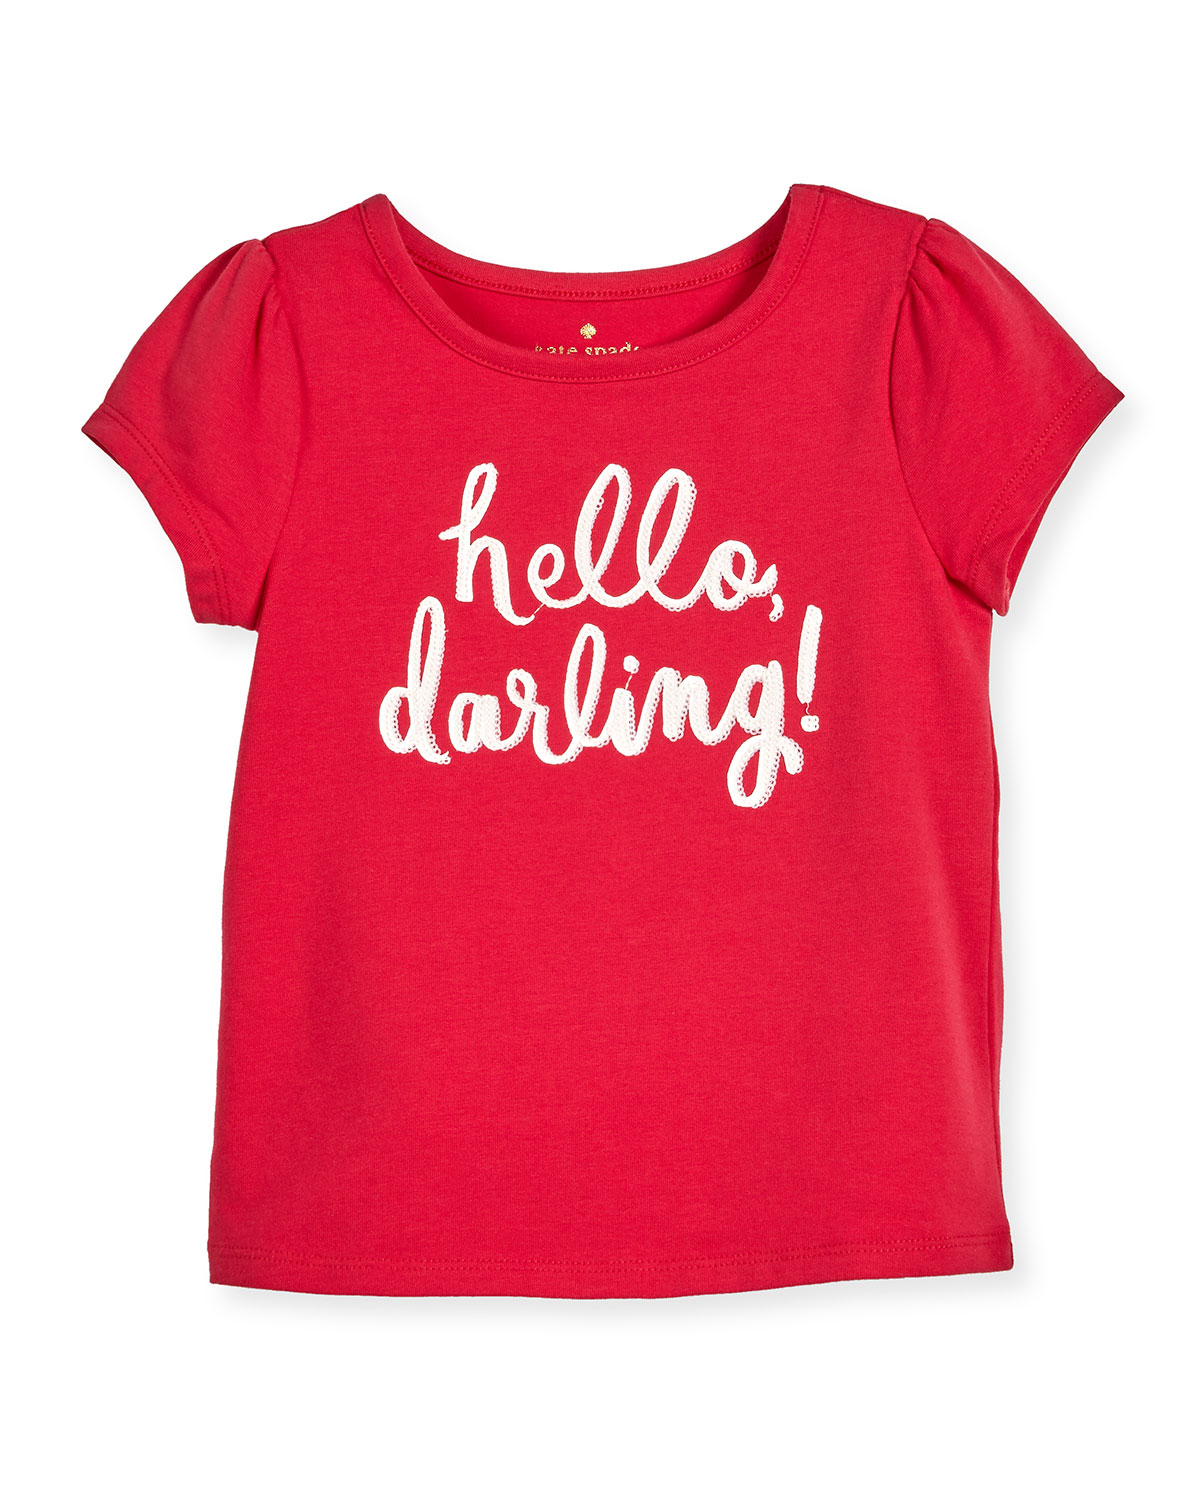 hello darling stretch jersey tee, pink, size 7-14